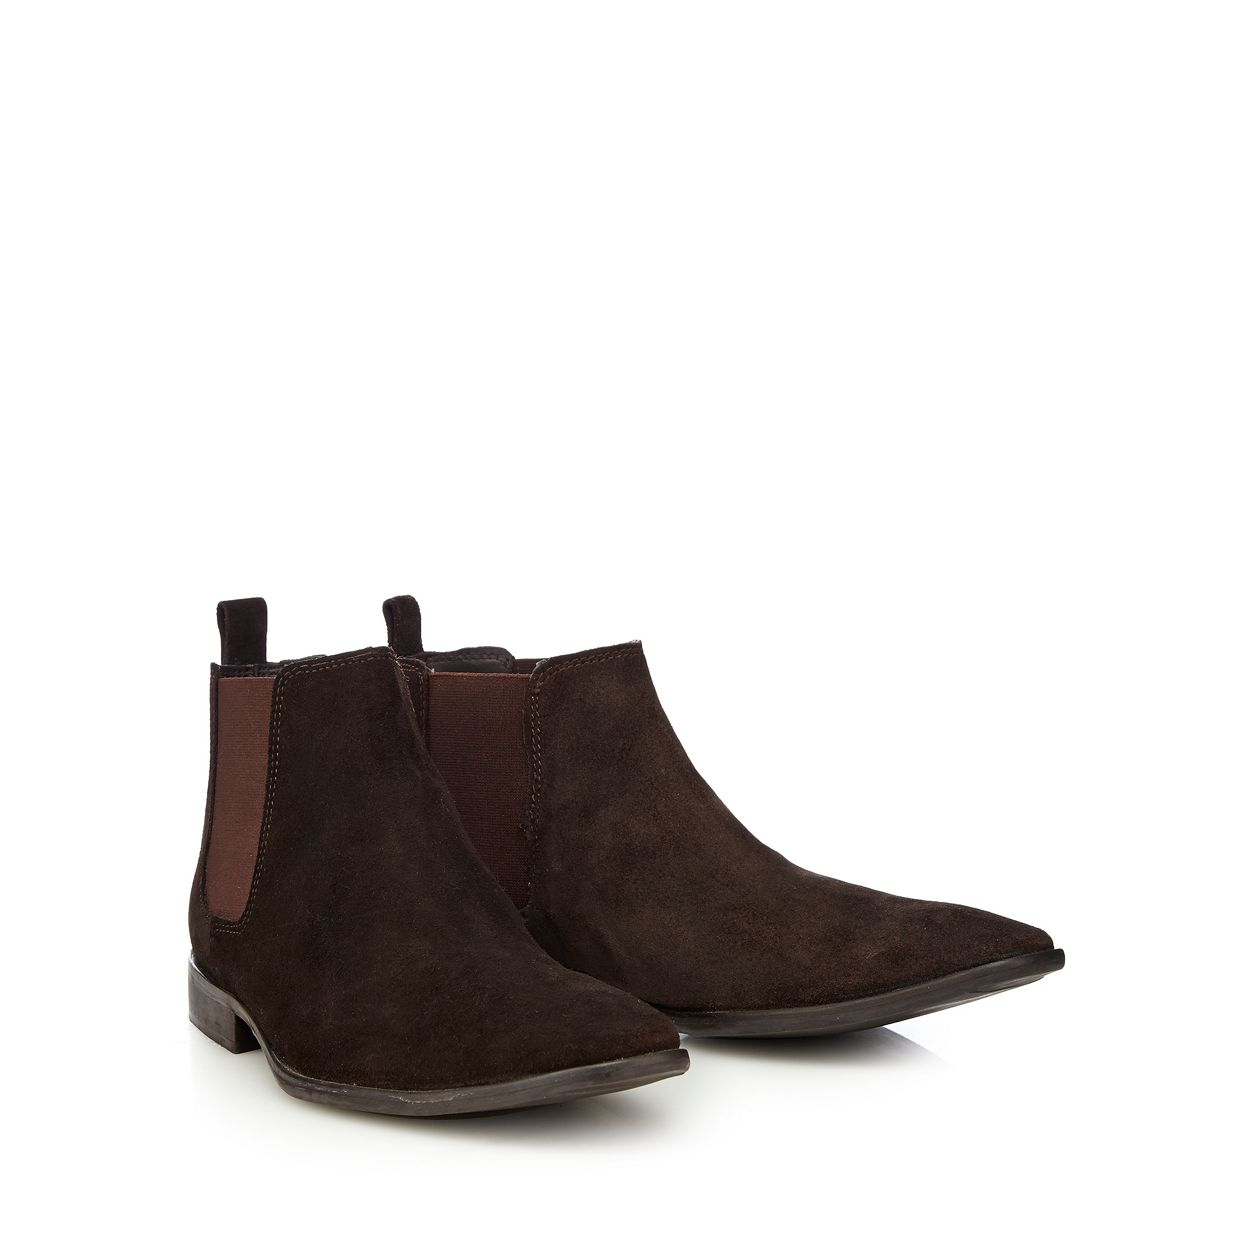 J by Jasper Conran Chocolate Brown suede Chelsea boots